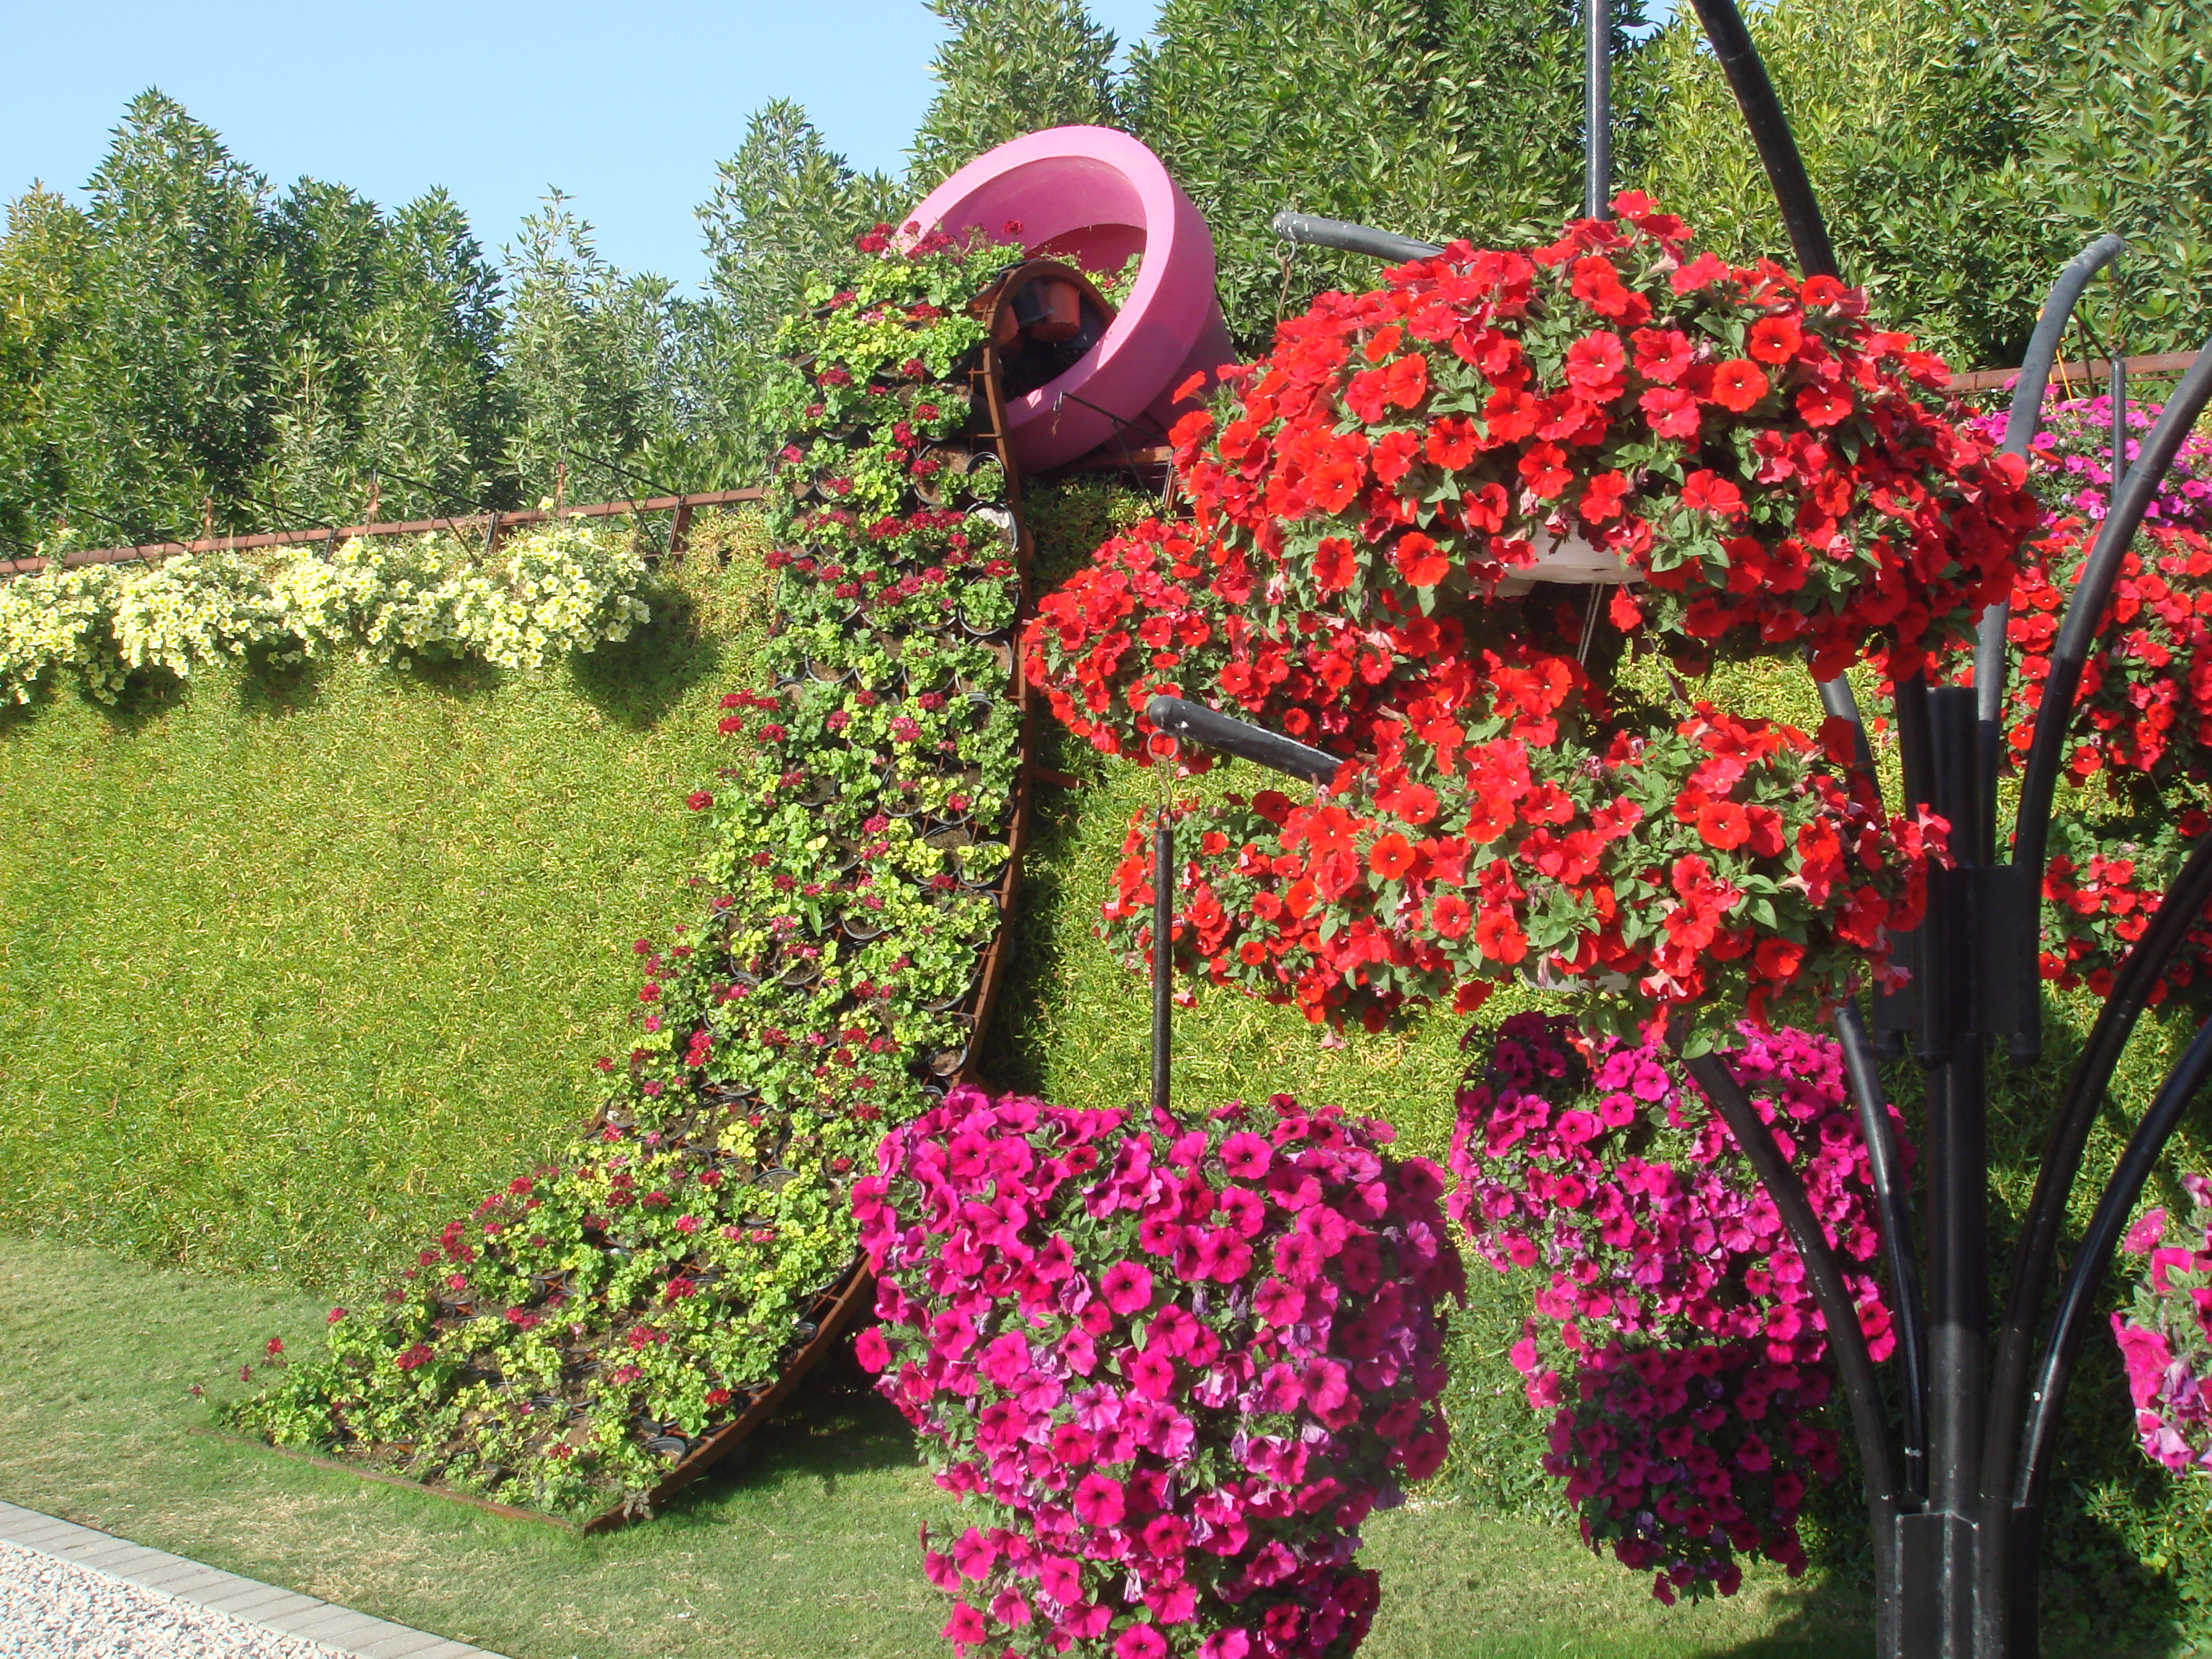 Dubai Miracle Garden and the strange lack of insects